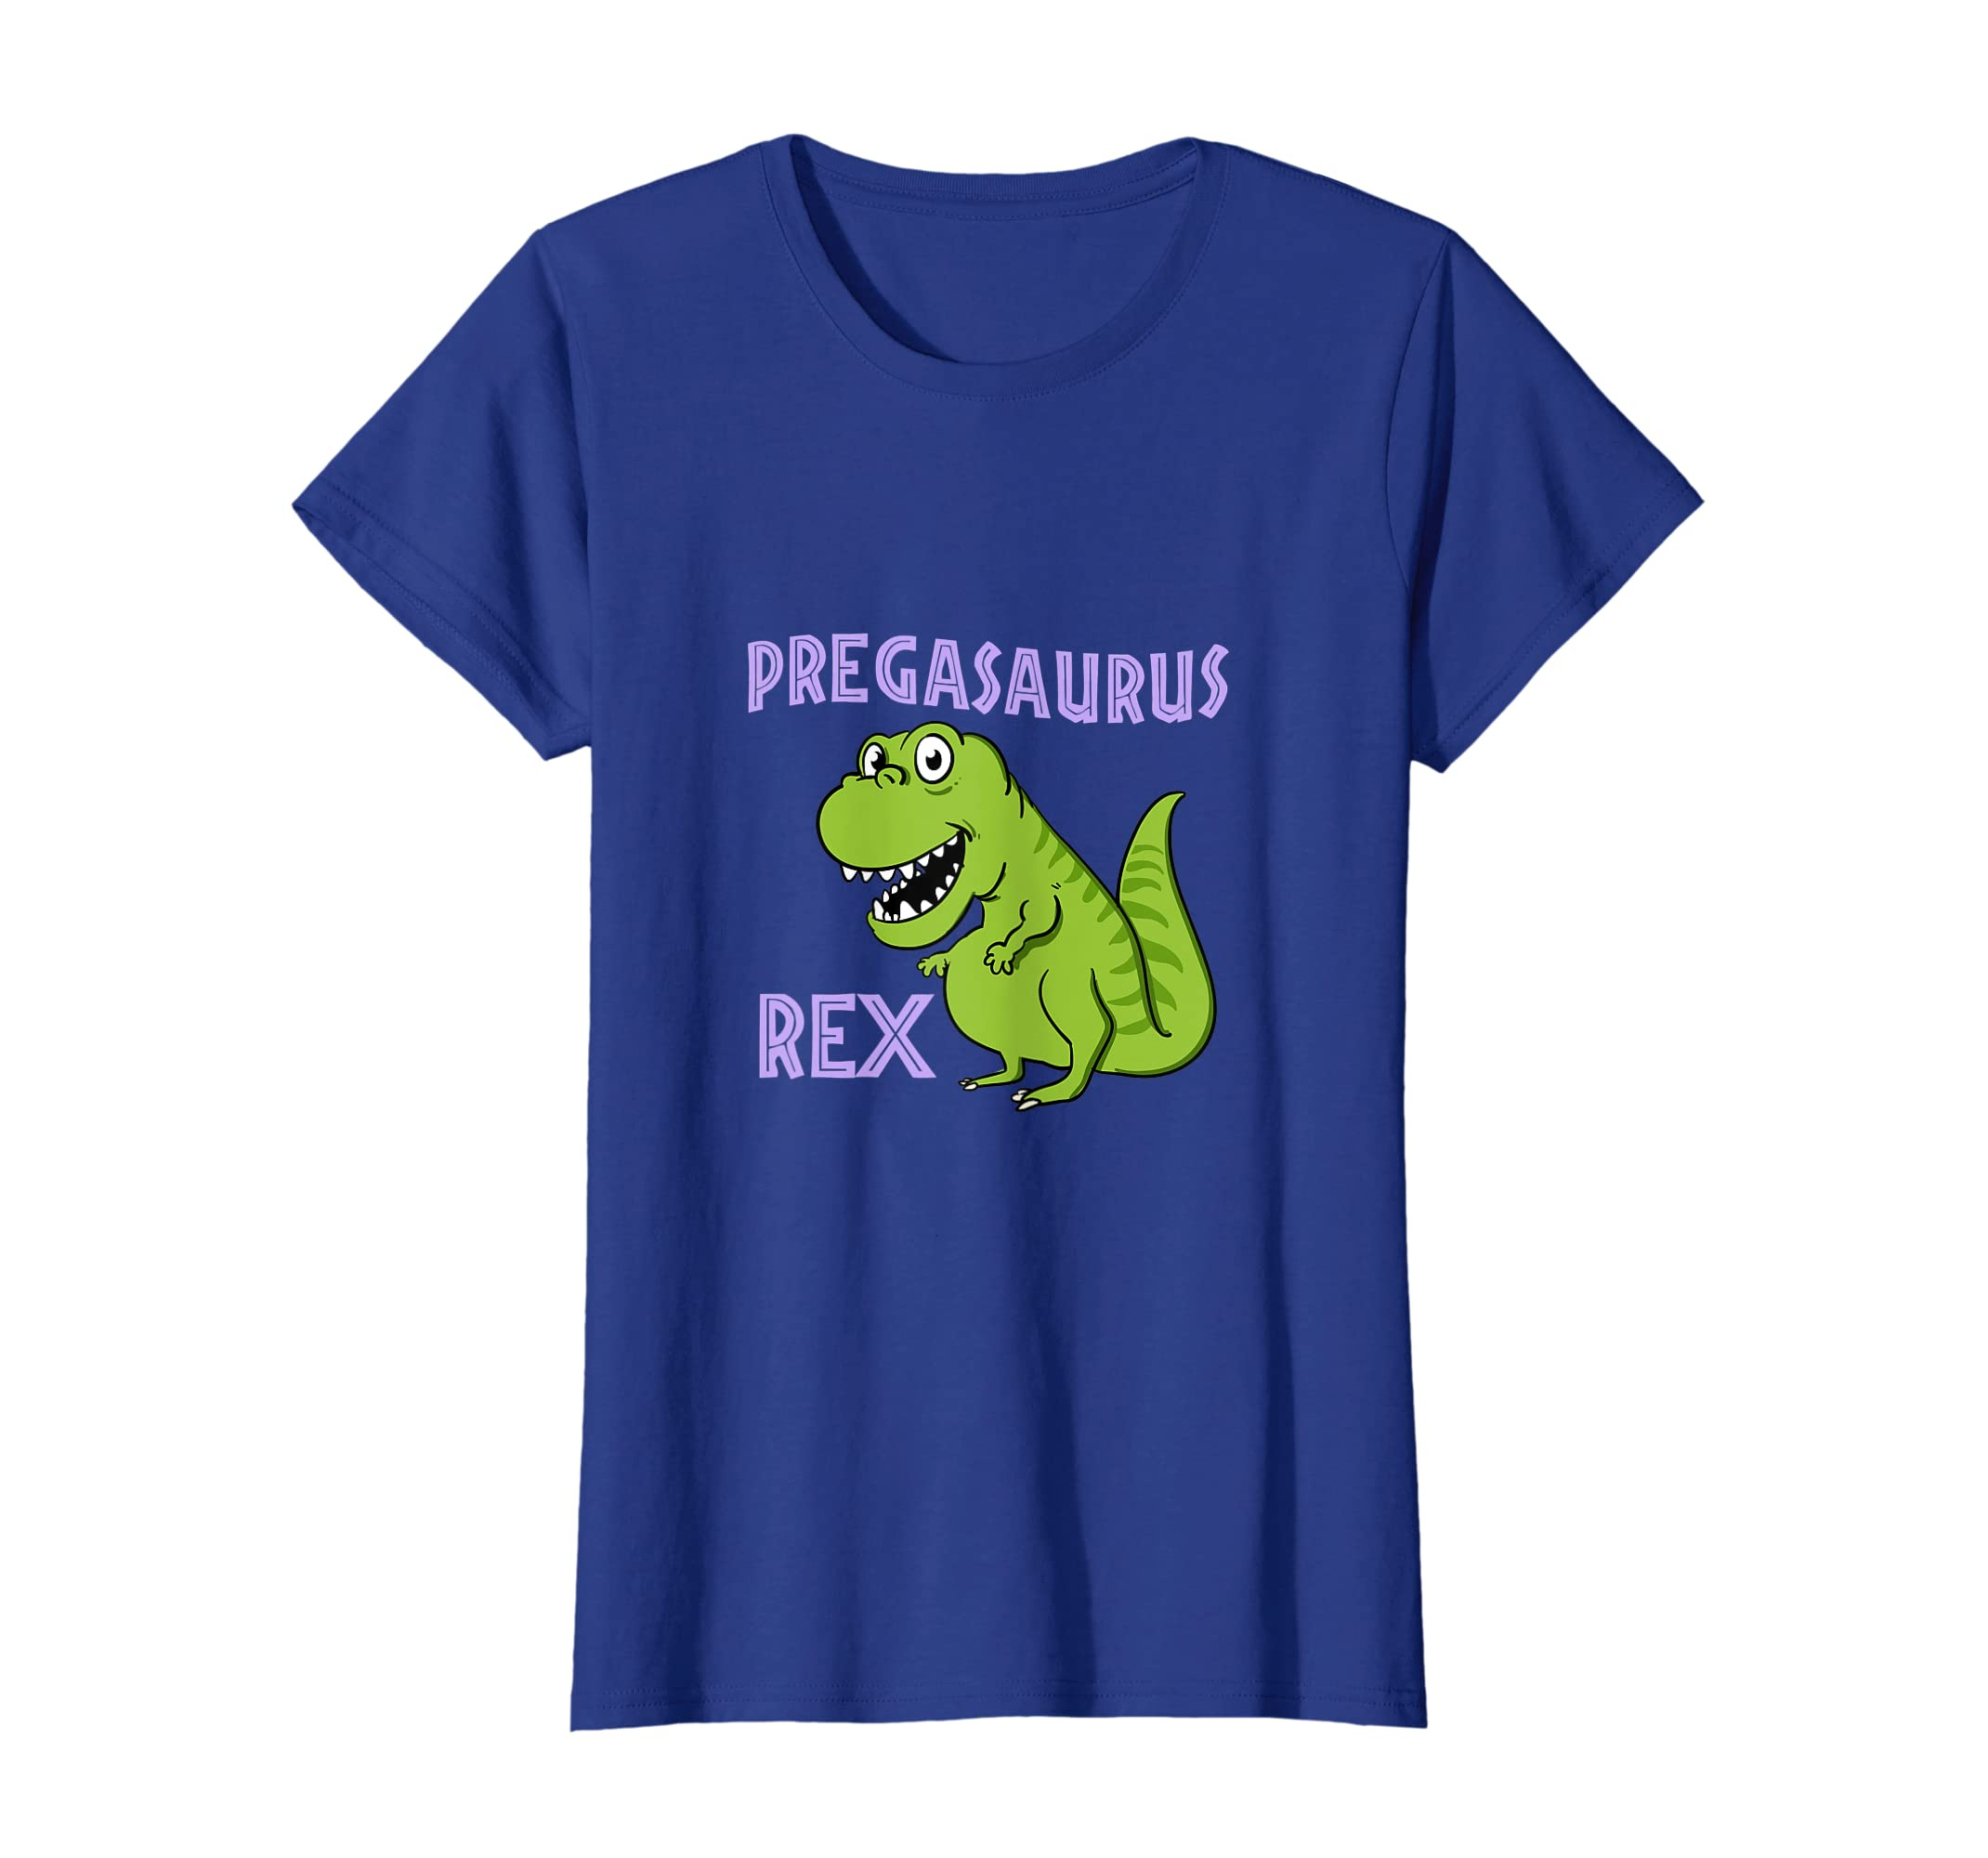 ece49c41a Amazon.com: Womens Funny Pregasaurus Rex T-Shirt Mom To Be Pregnancy Gift  Tee: Clothing